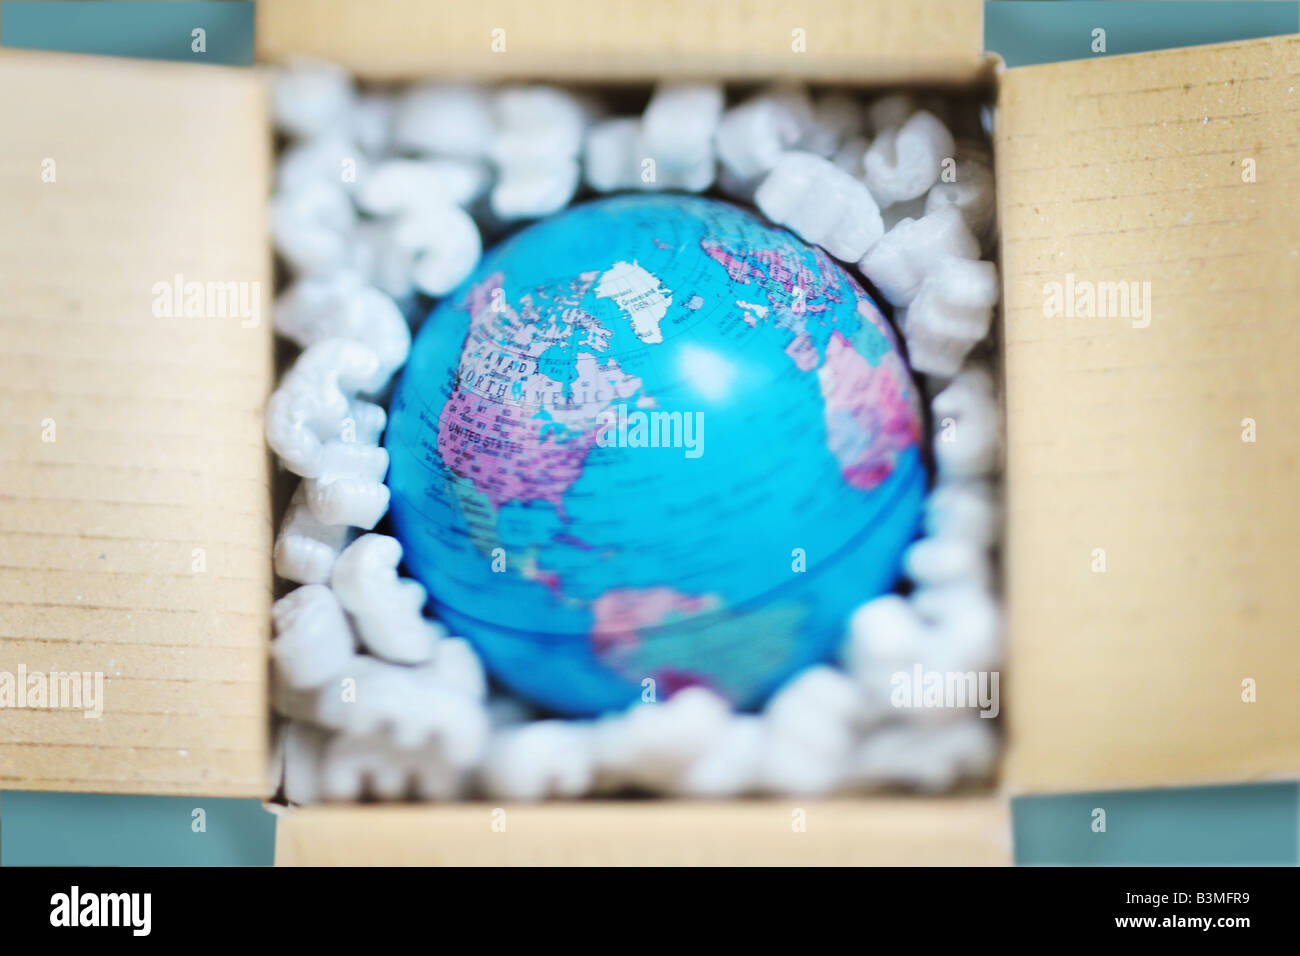 Globe dans un emballage de protection Photo Stock